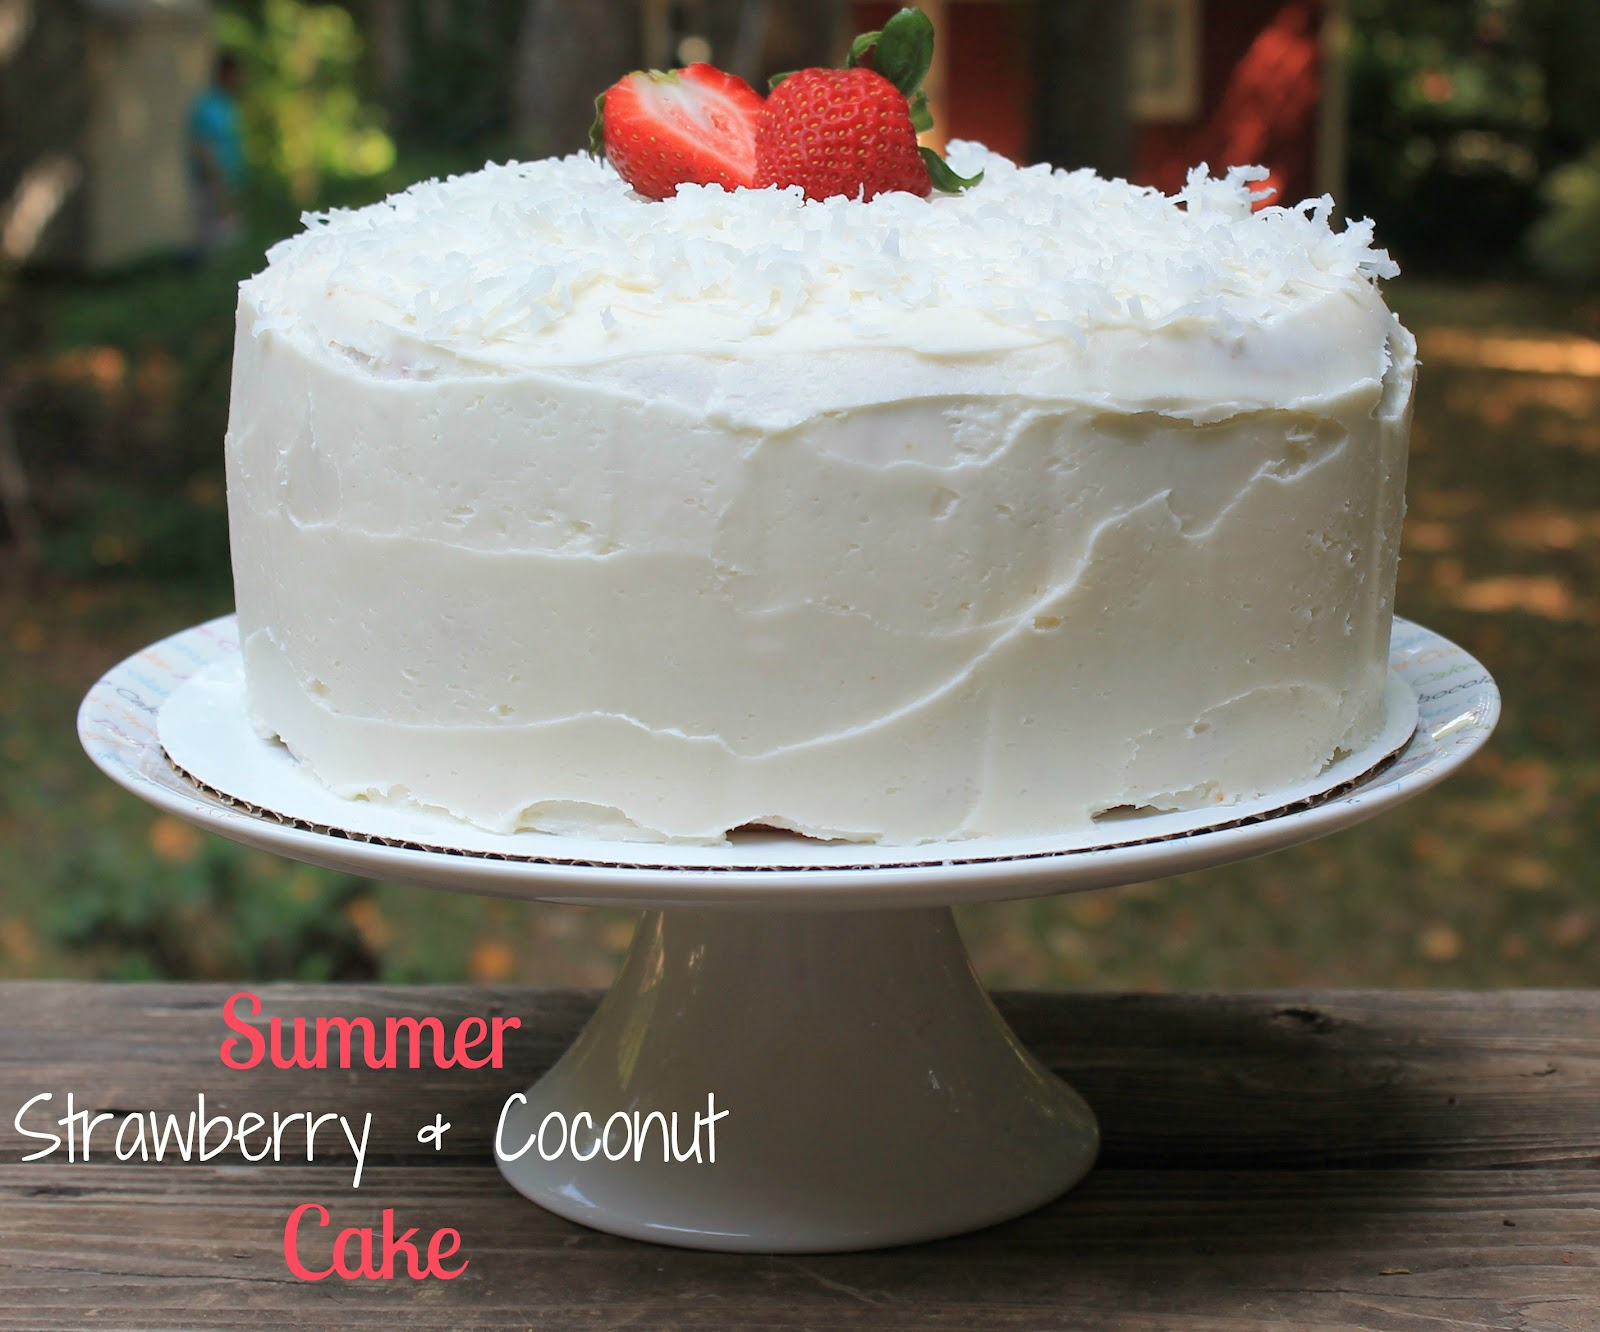 Carolina Charm: Summer Strawberry Coconut Cake